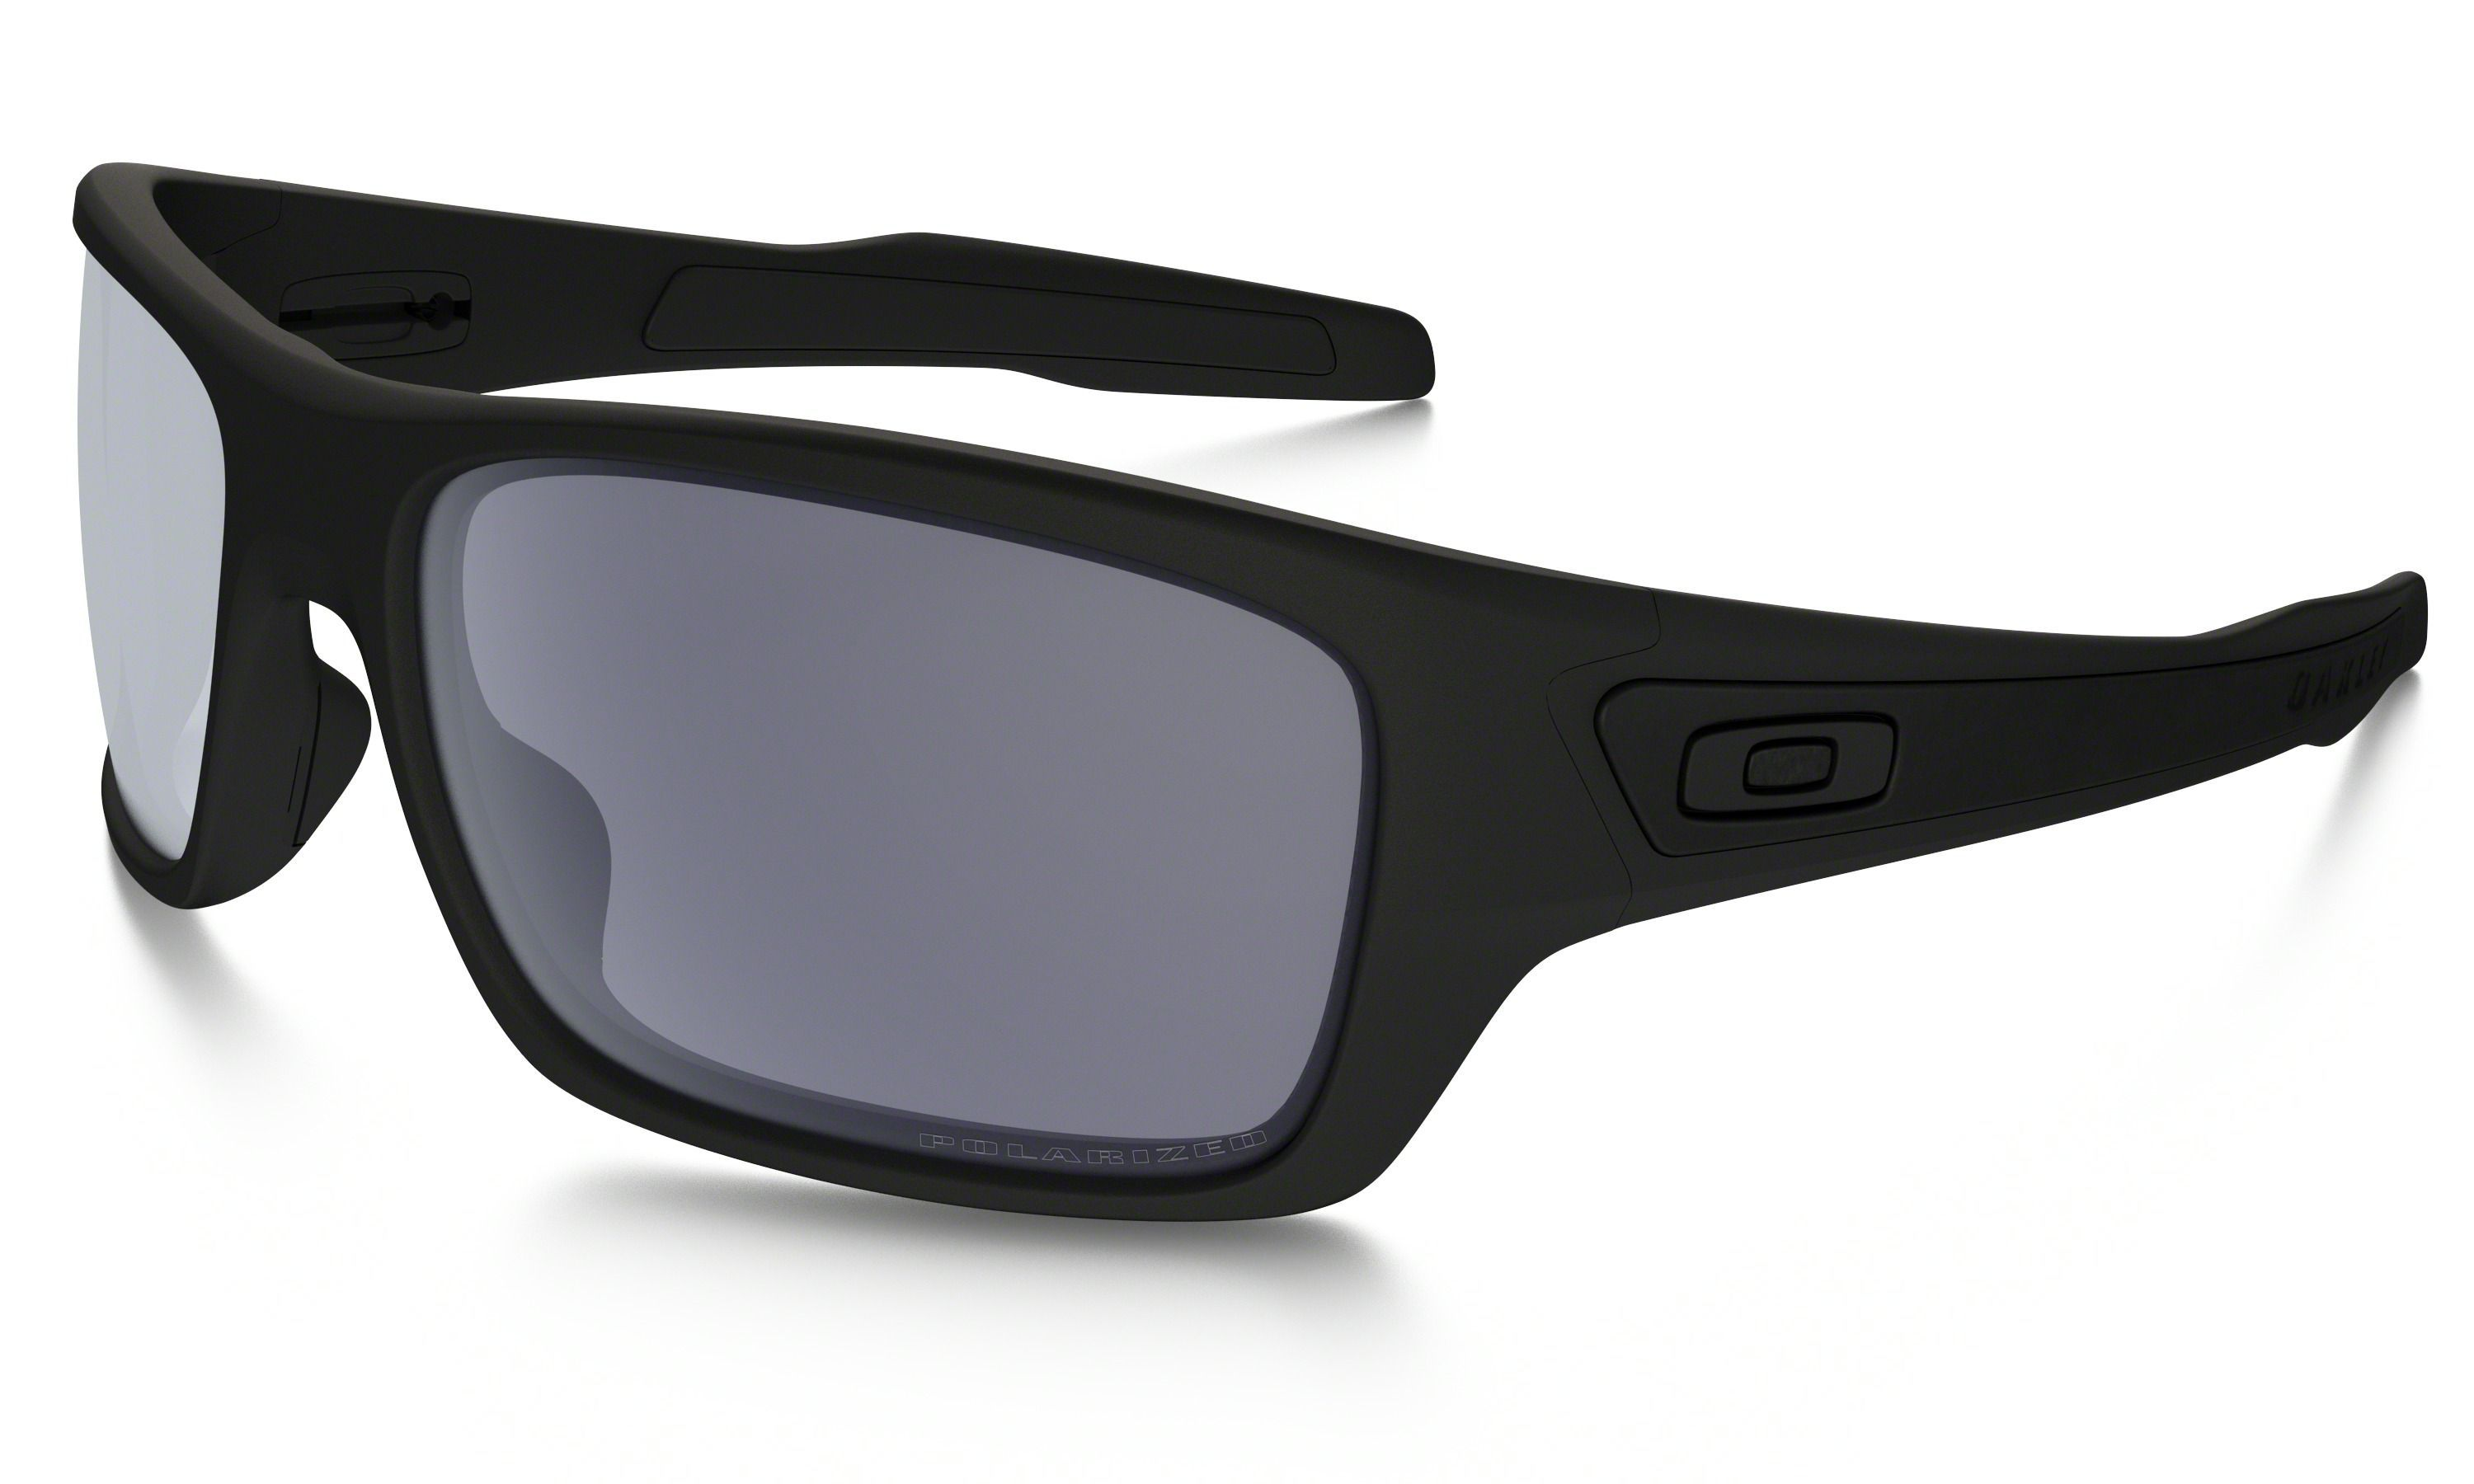 299f69f569 Features Oakley Twin Toric lens technology with HDO® Polarized and Iridium®  lens options available Unobtainium earsocks and nosepads for increased  comfort ...